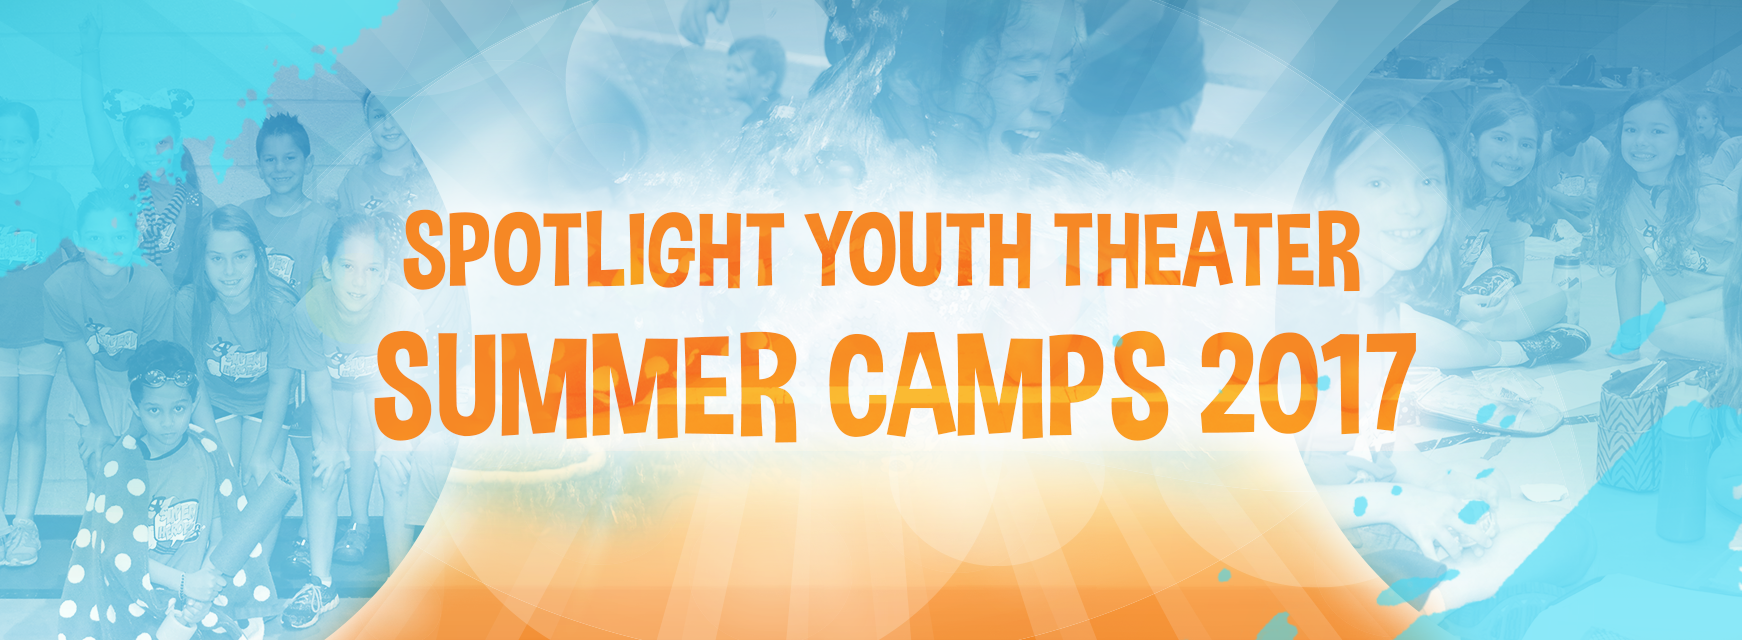 Spotlight Youth Theater Summer Camp 2017